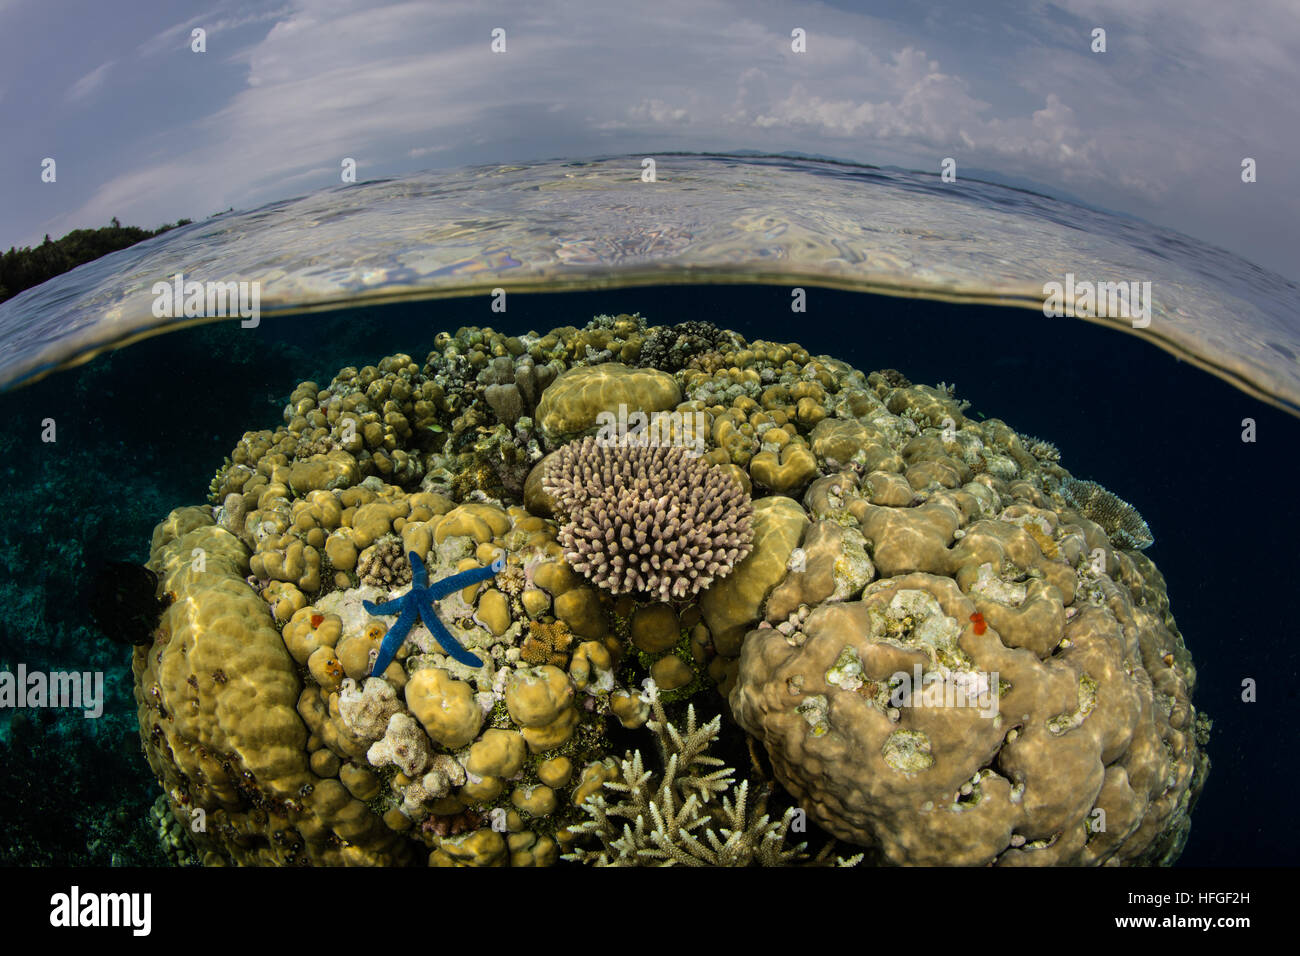 Corals grow in shallow water in the Solomon Islands. This region is known for its incredible marine biodiversity. - Stock Image